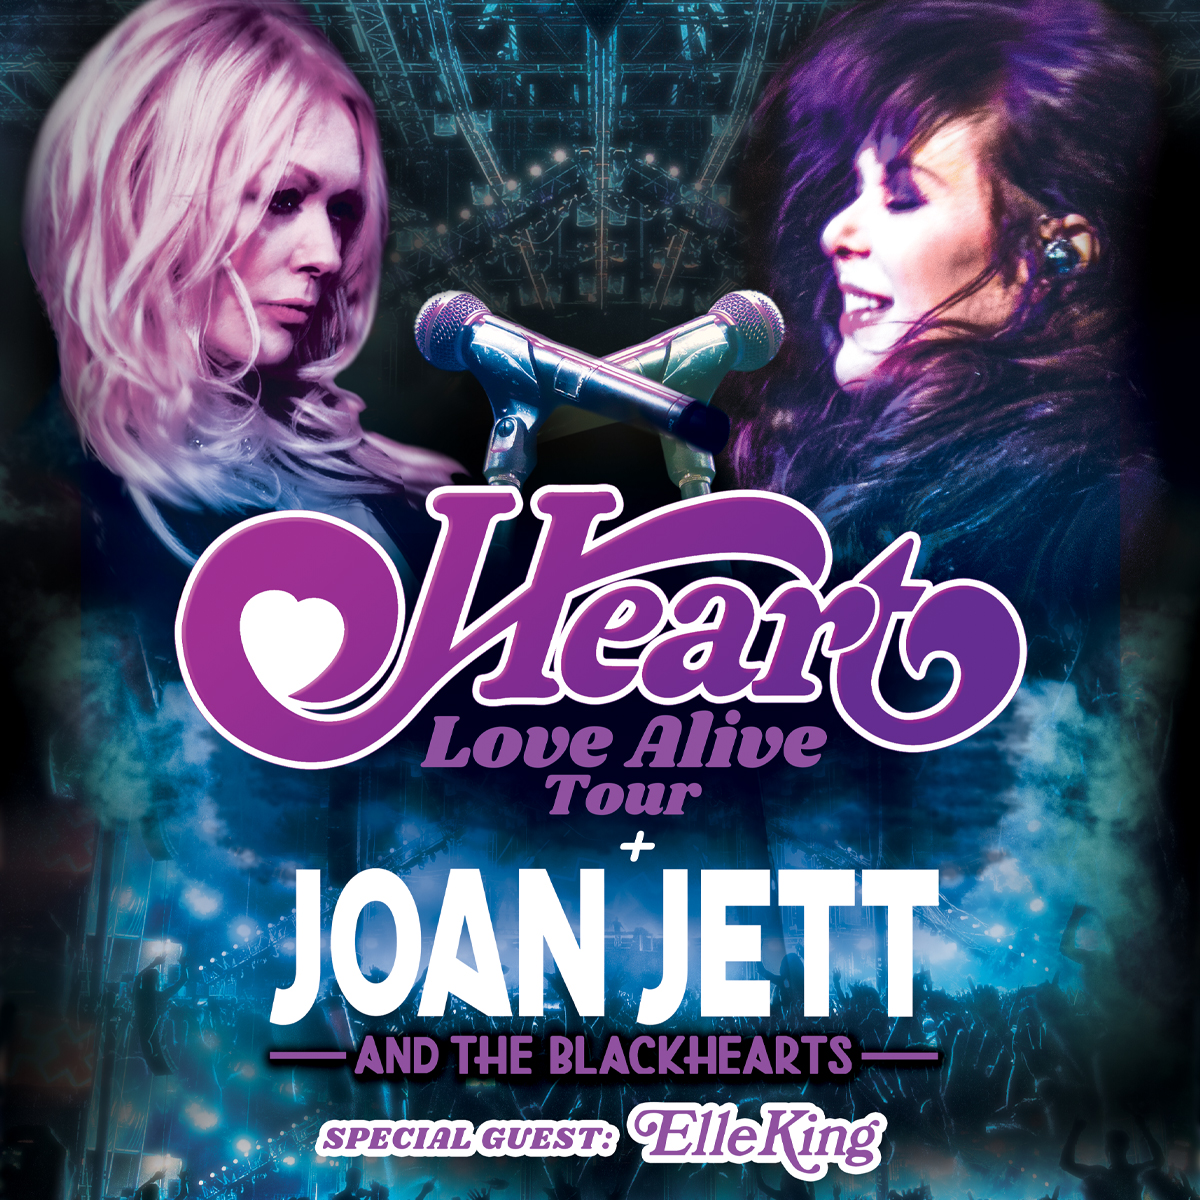 Heart - Love Alive Tour with special guests Joan Jett & the Blackhearts, Elle King @ PNC Music Pavillion